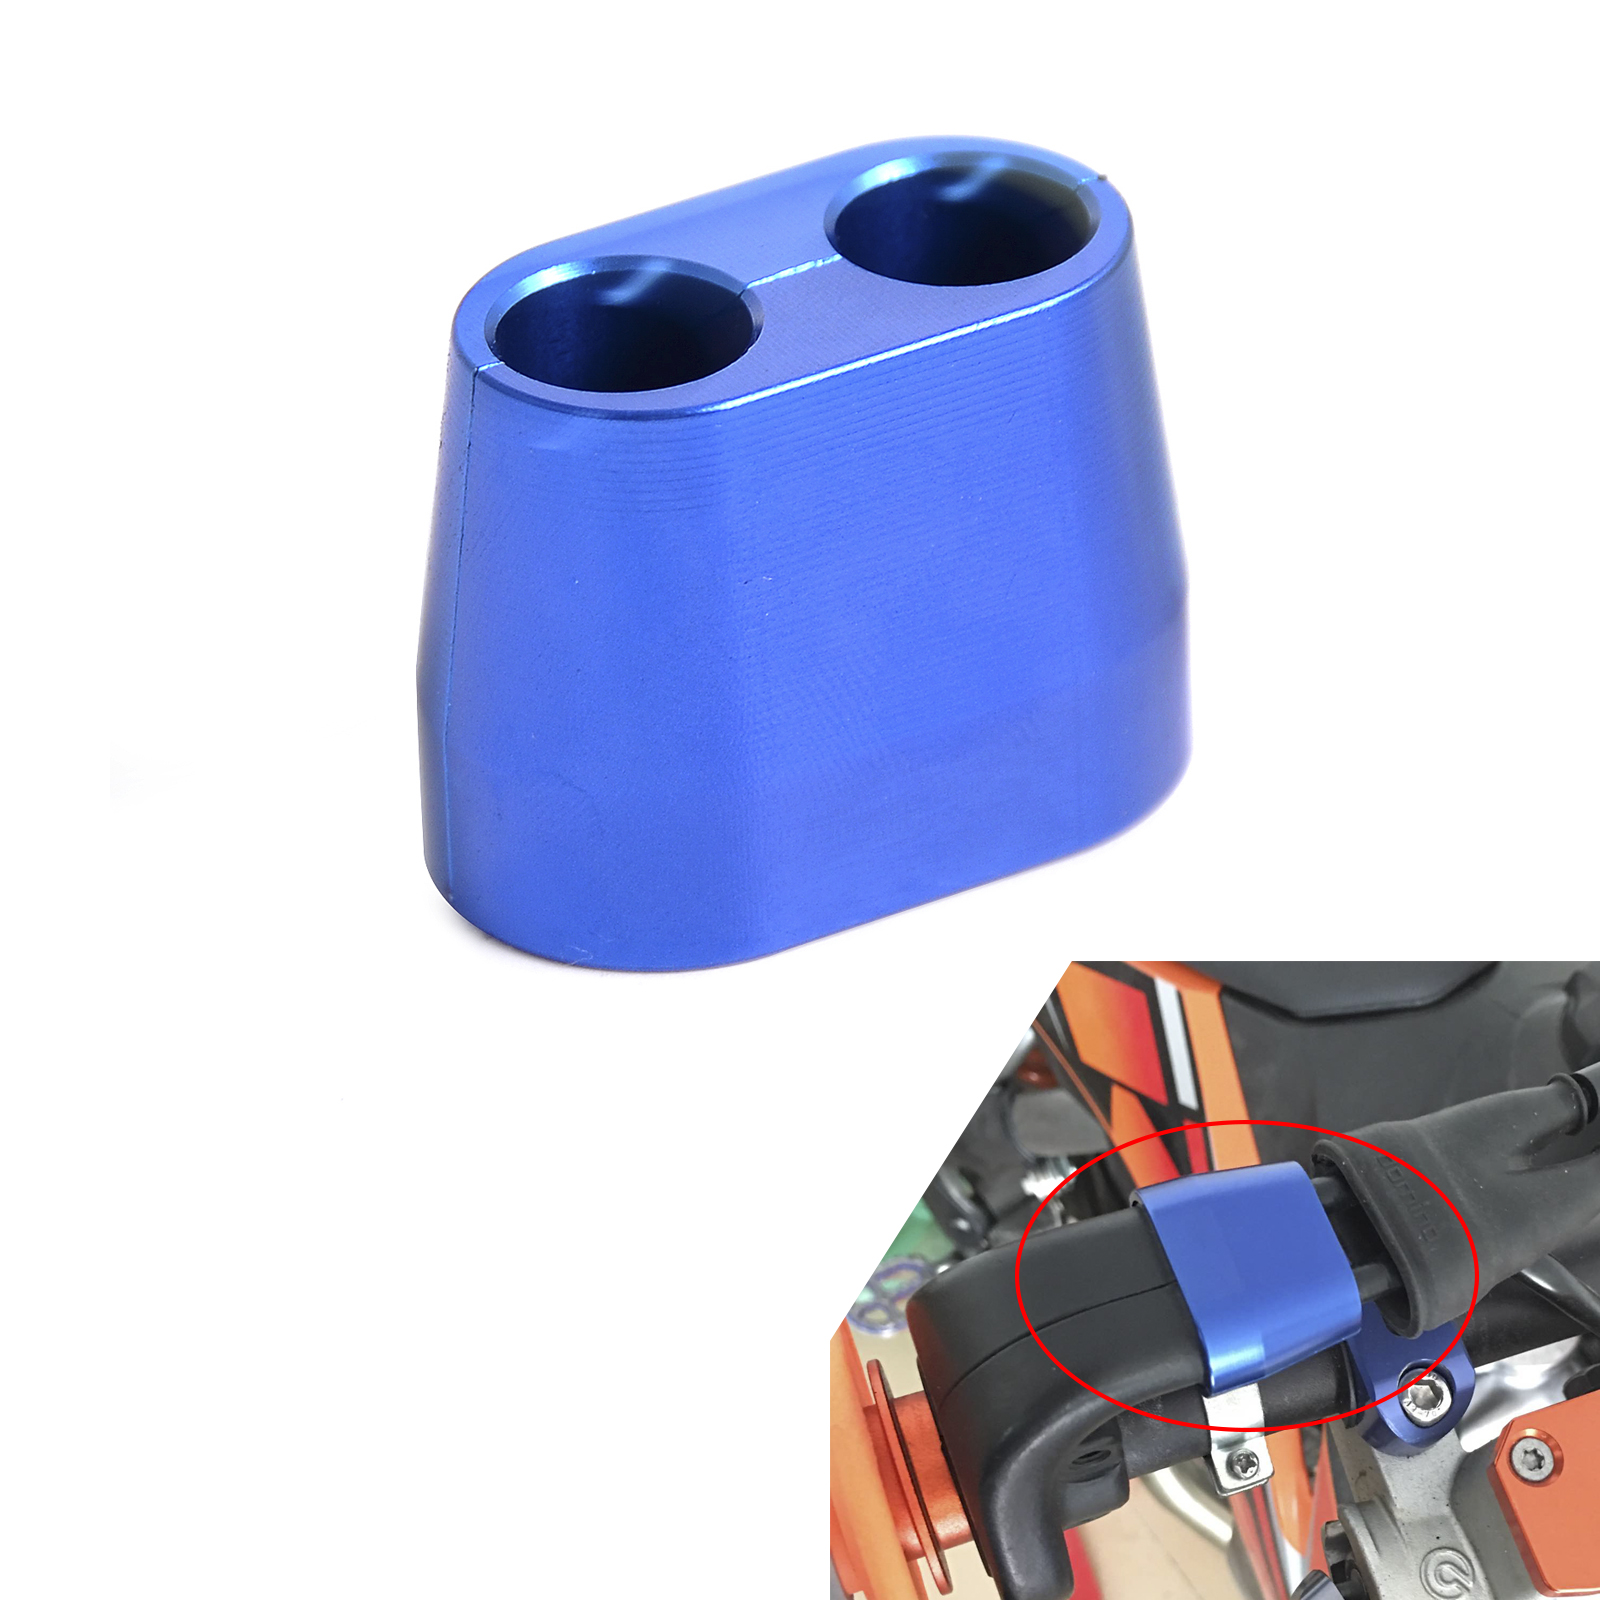 Throttle Cable Guard Protector Cover For Yamaha YZ250F YZ450F YZ250FX YZ450FX WR250F WR426F WR450F WR 250F 450F YZ 250FX 450FX(China)